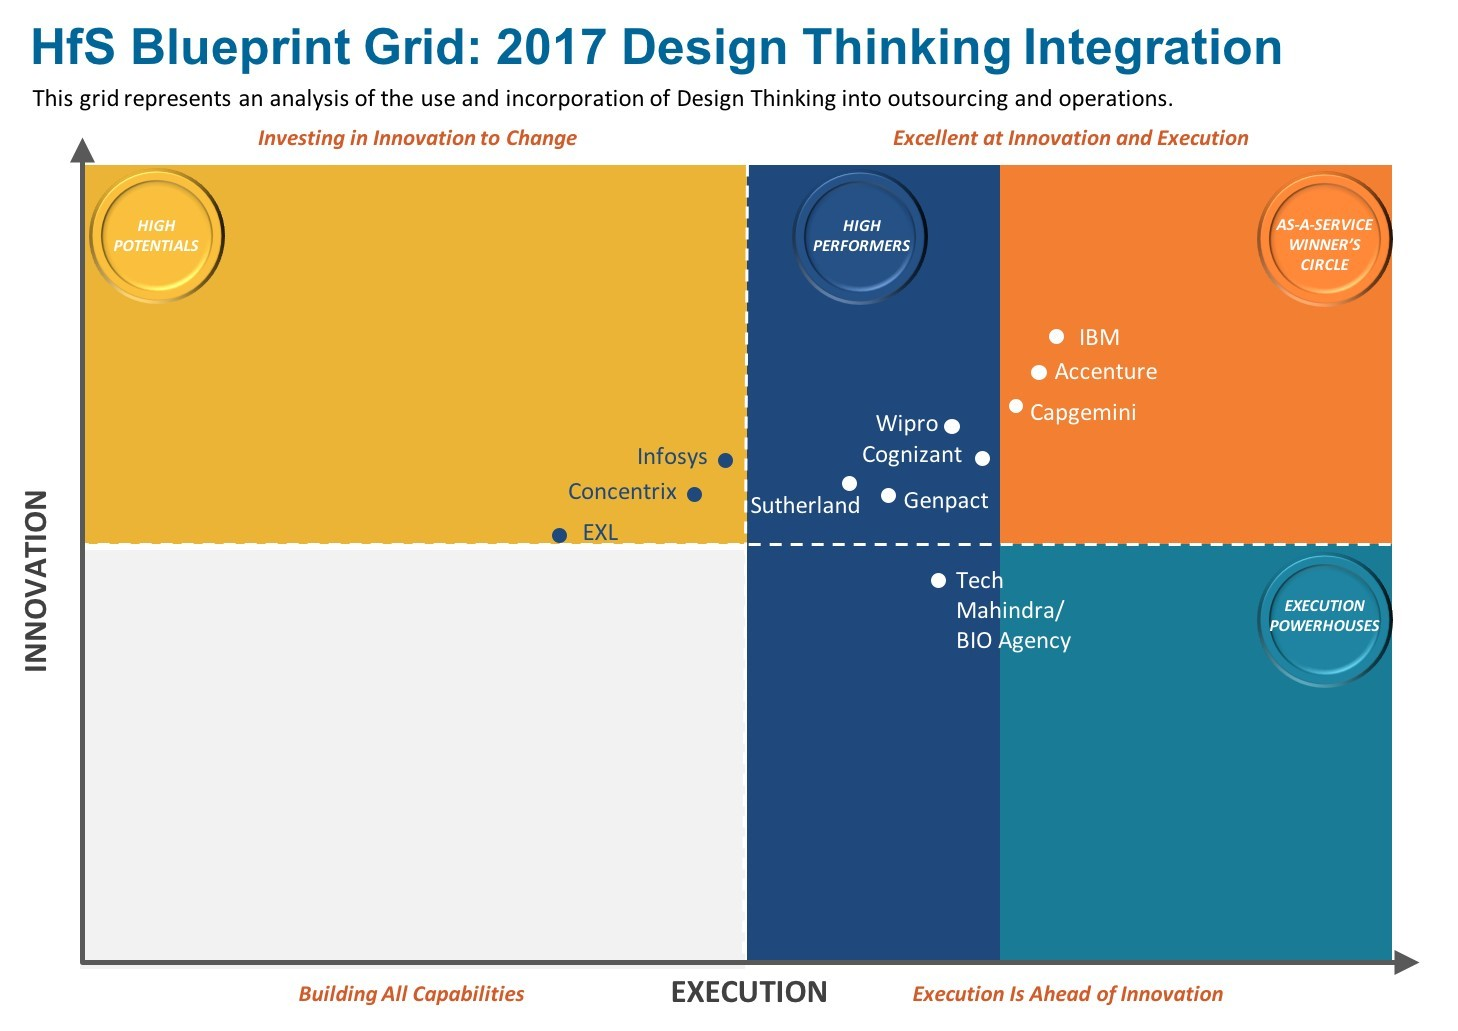 Accenture positioned in as a service winner circle for design full size malvernweather Choice Image